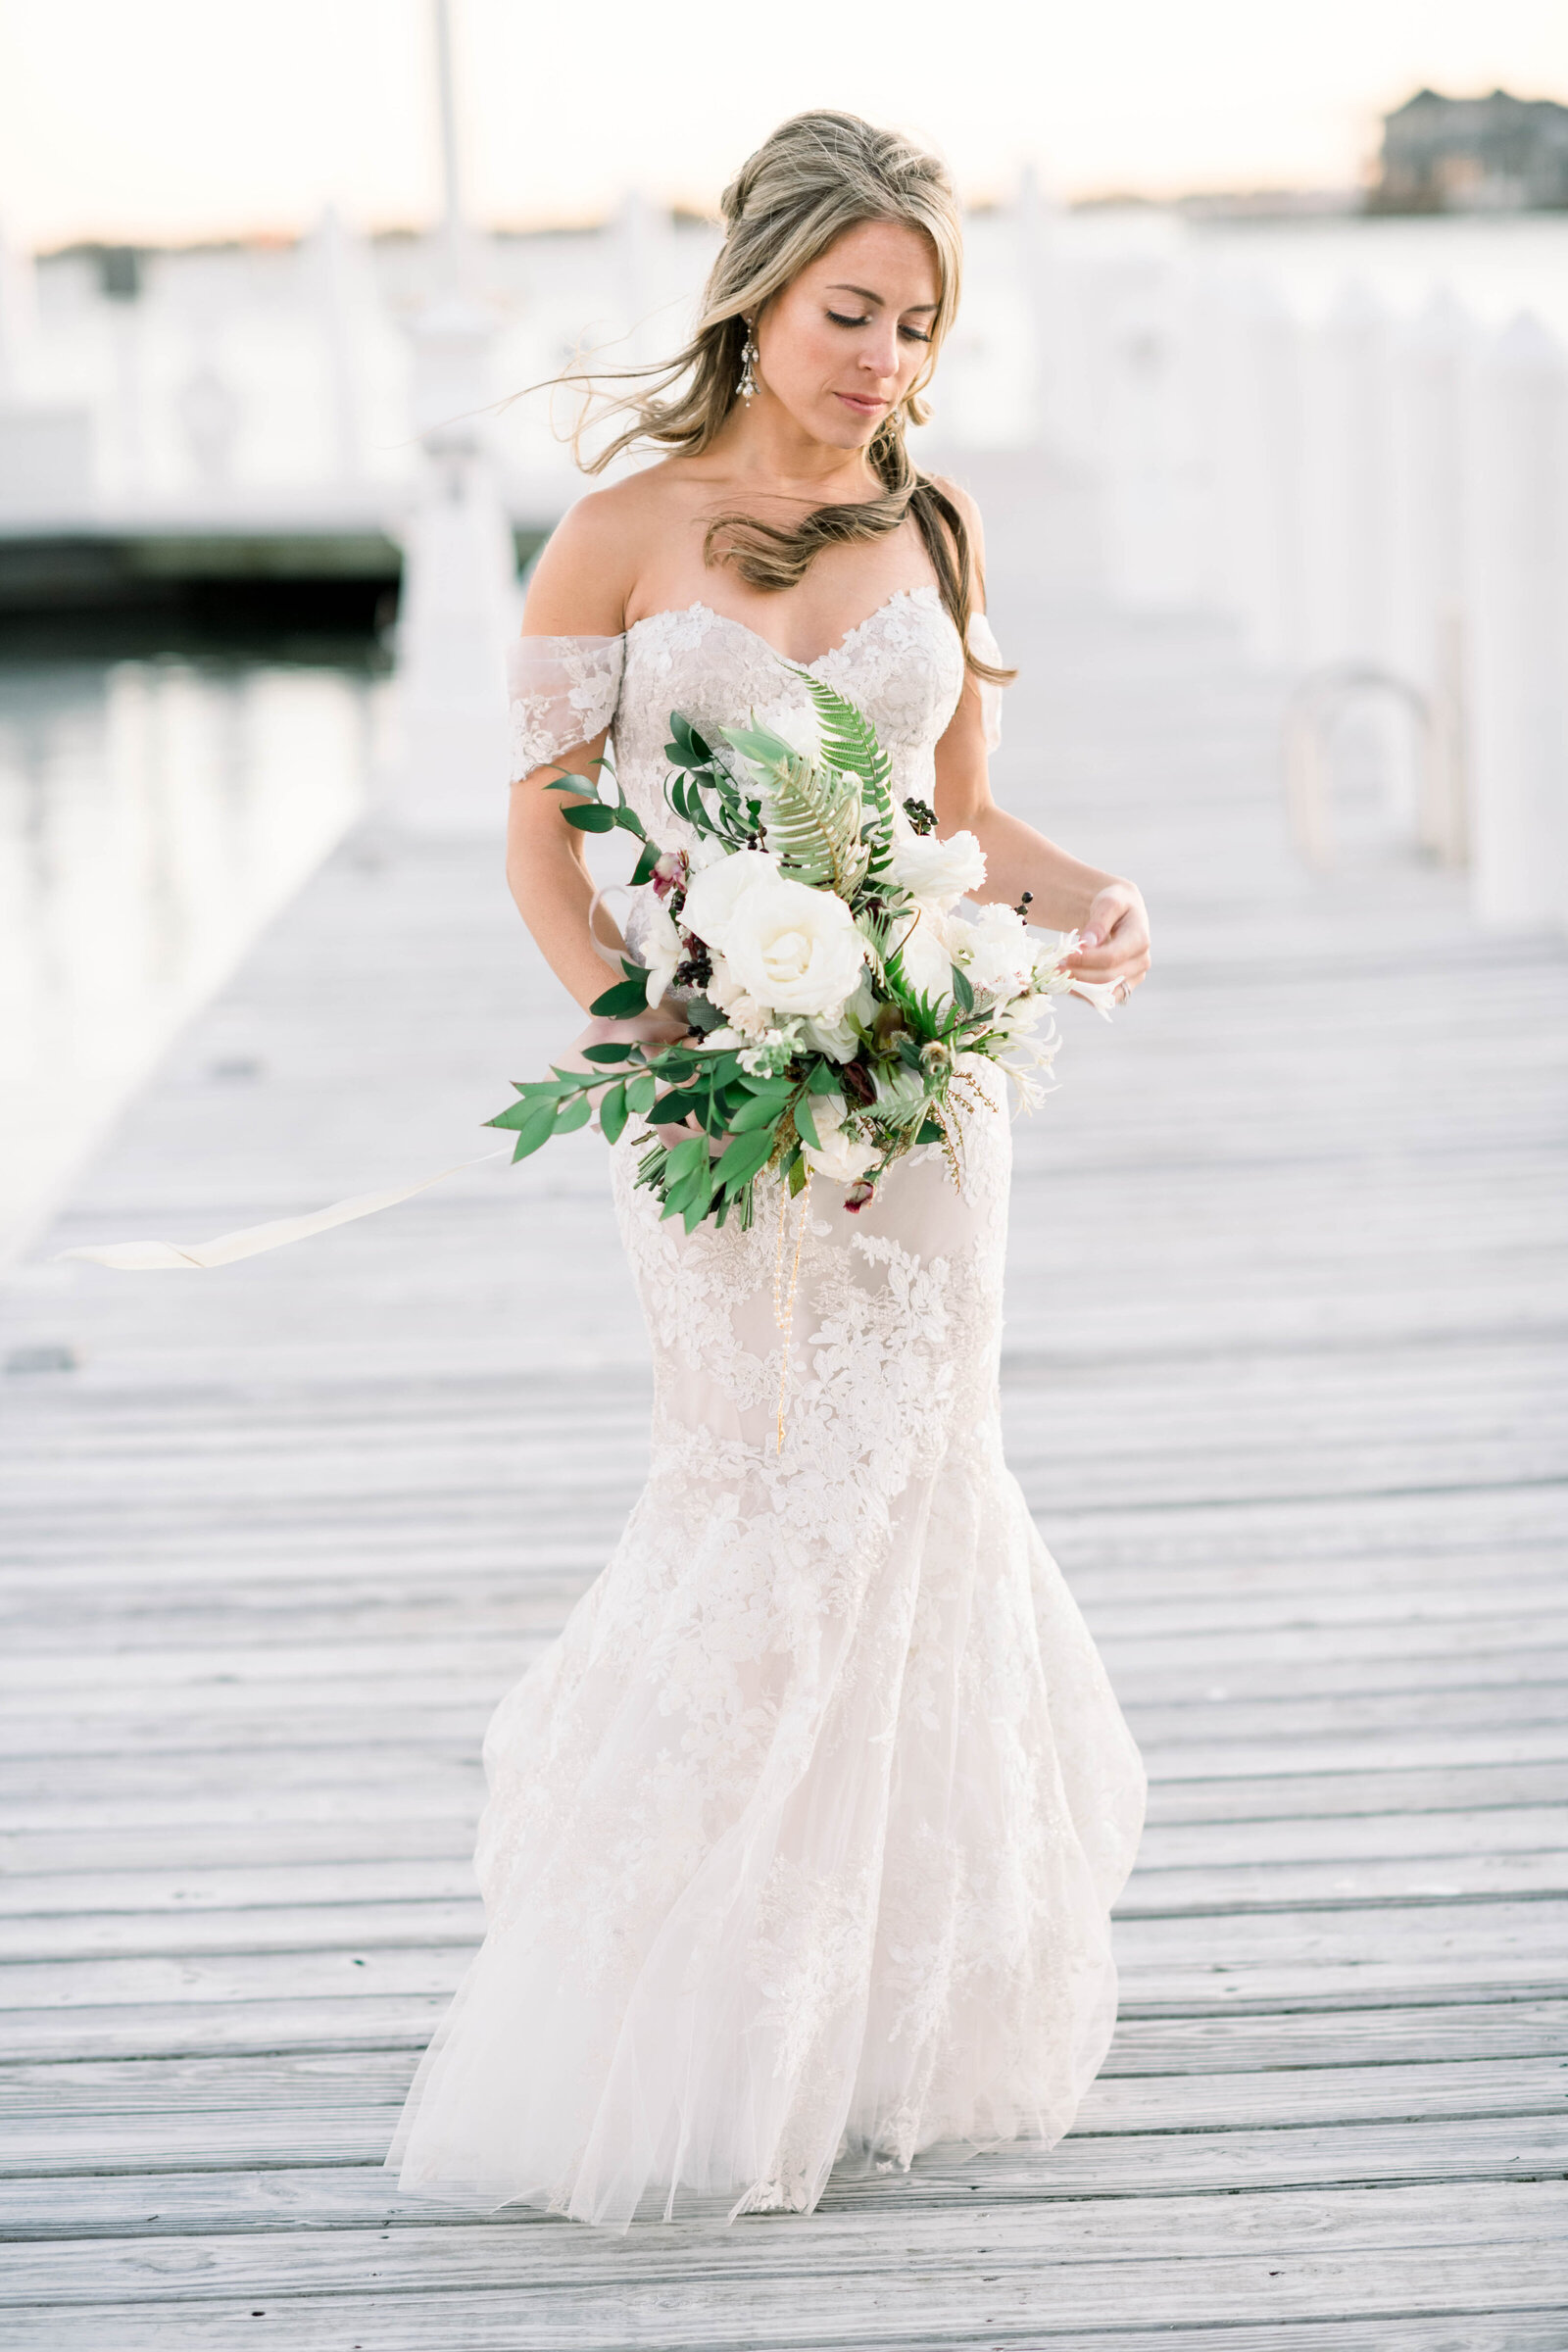 Fine art elegant refined wedding on the water with Monique Lhuillier wedding gown black tie and organic florals in Bay Head New Jersey by Liz Andolina Photography